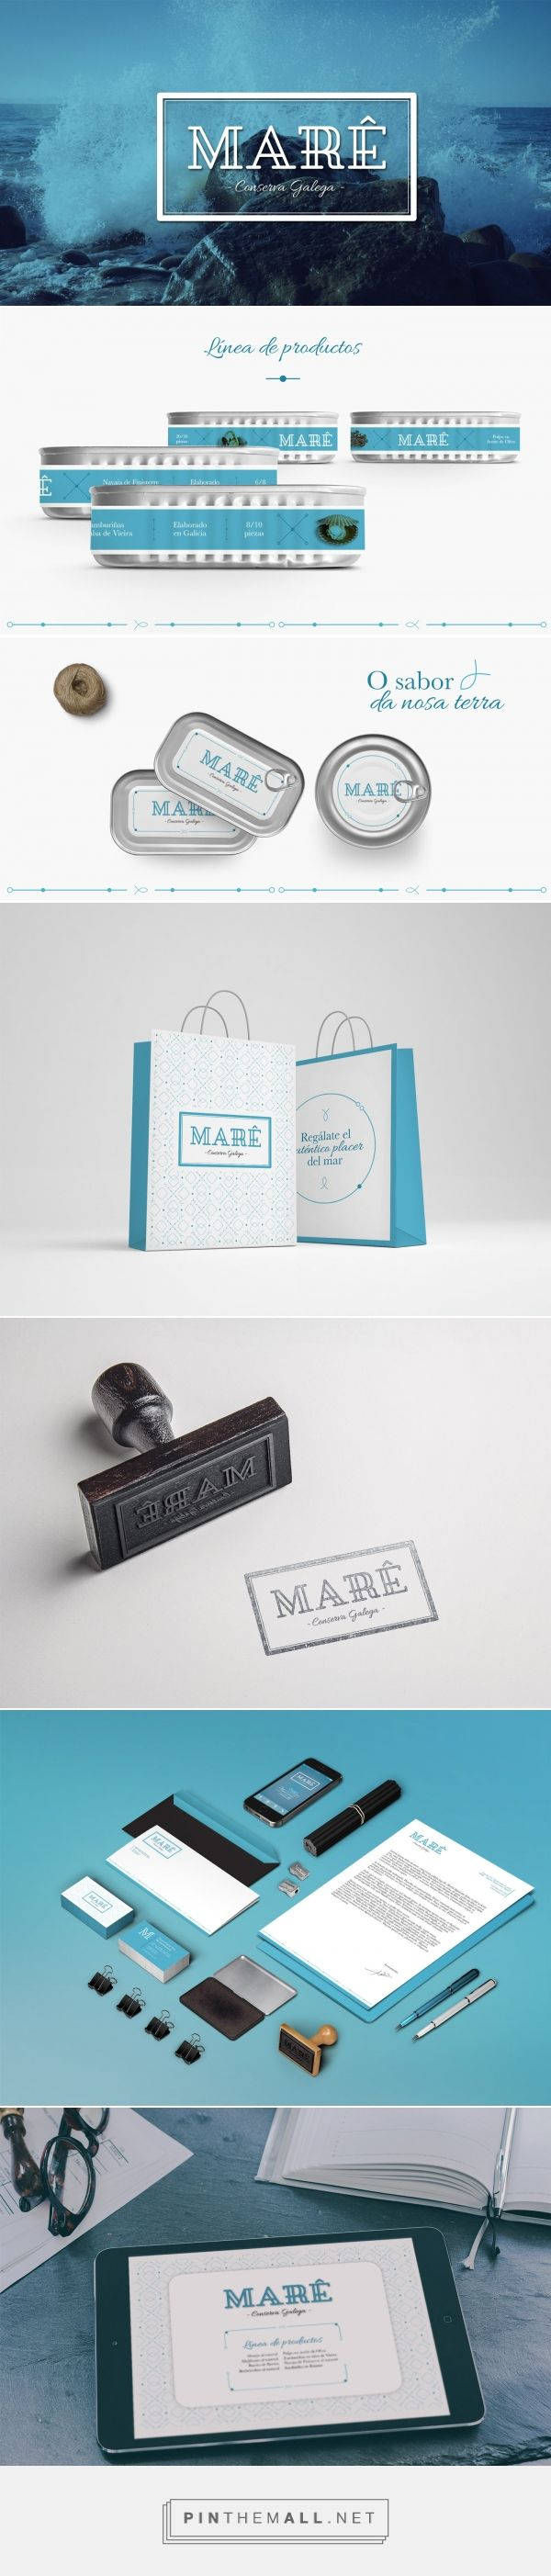 Brandinal Agencia de Marketing y Publicidad Vigo - Brandinal | Marê curated by Packaging Diva PD. My Spanish is a little rusty, seafood identity packaging branding.